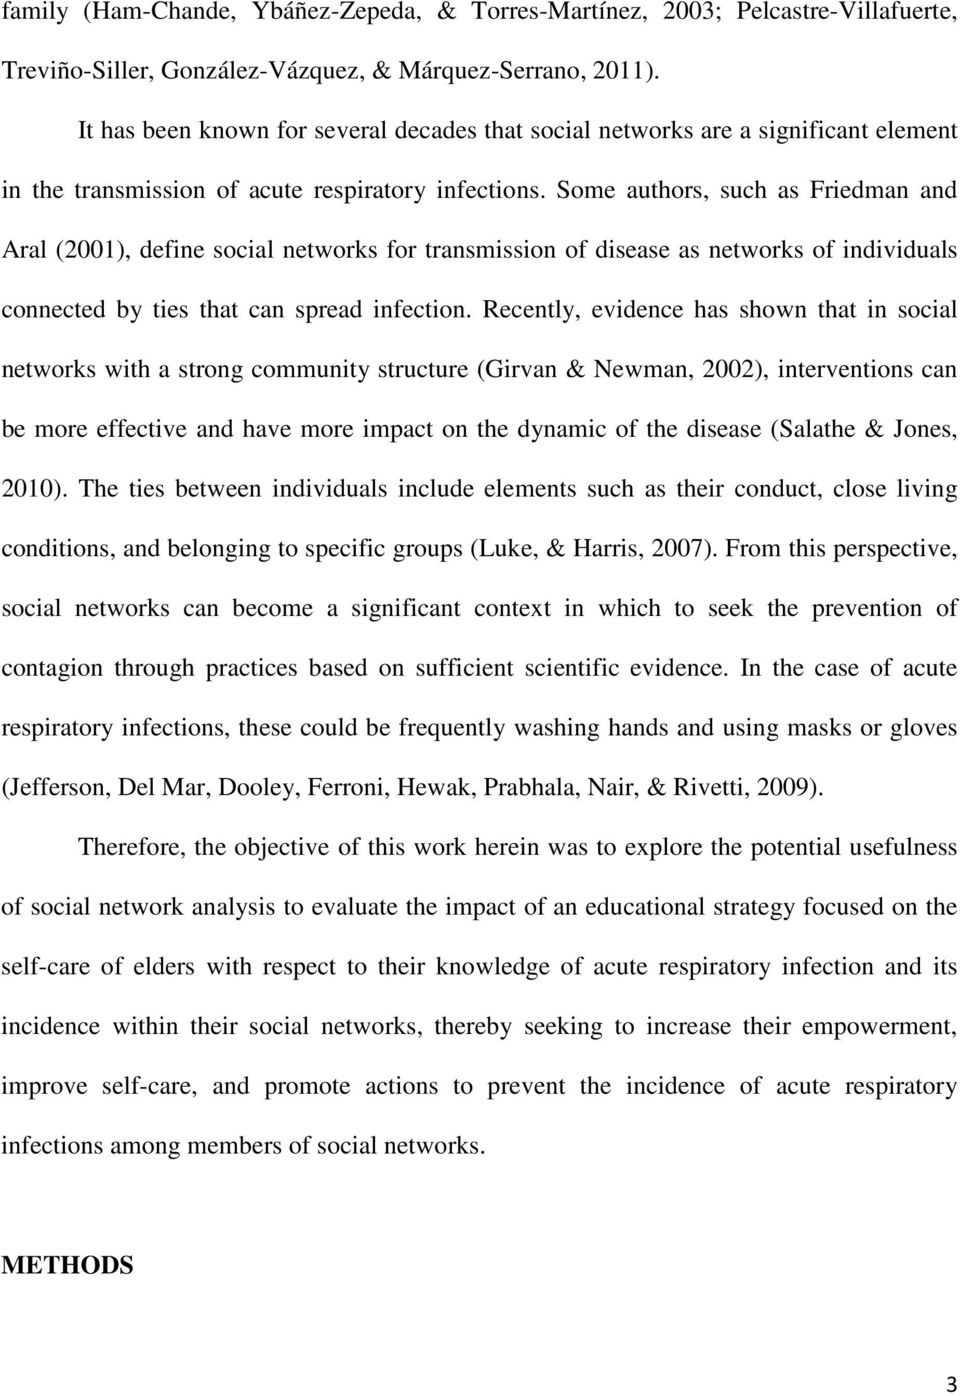 Some authors, such as Friedman and Aral (2001), define social networks for transmission of disease as networks of individuals connected by ties that can spread infection.